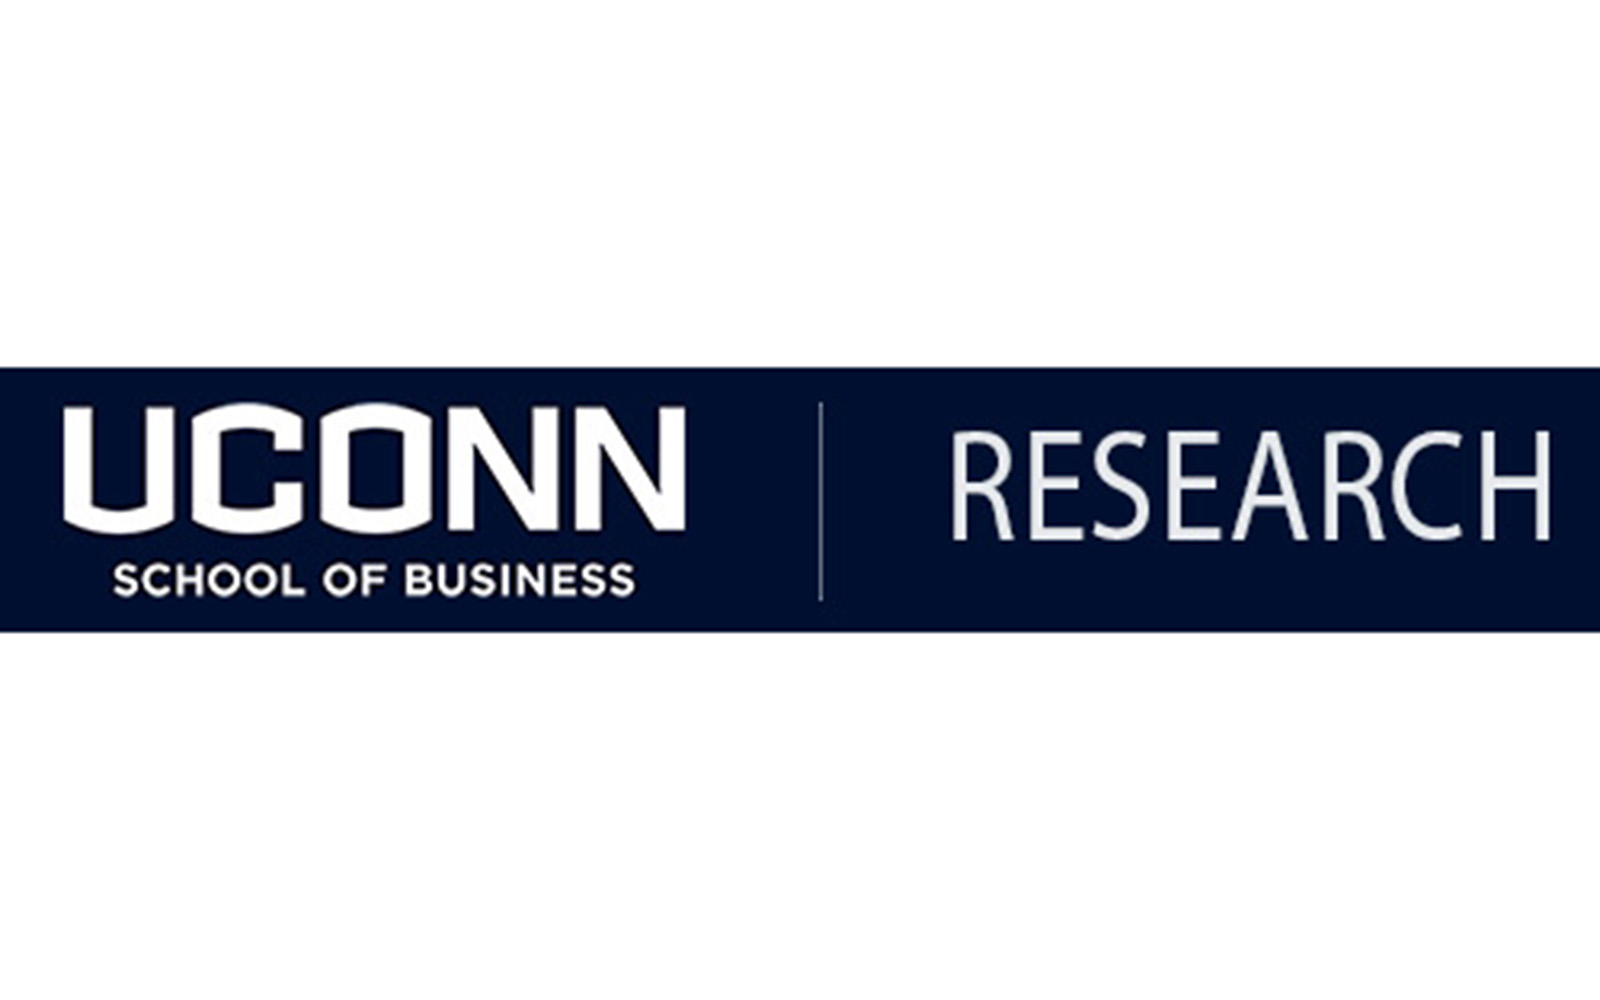 UConn School of Business Research